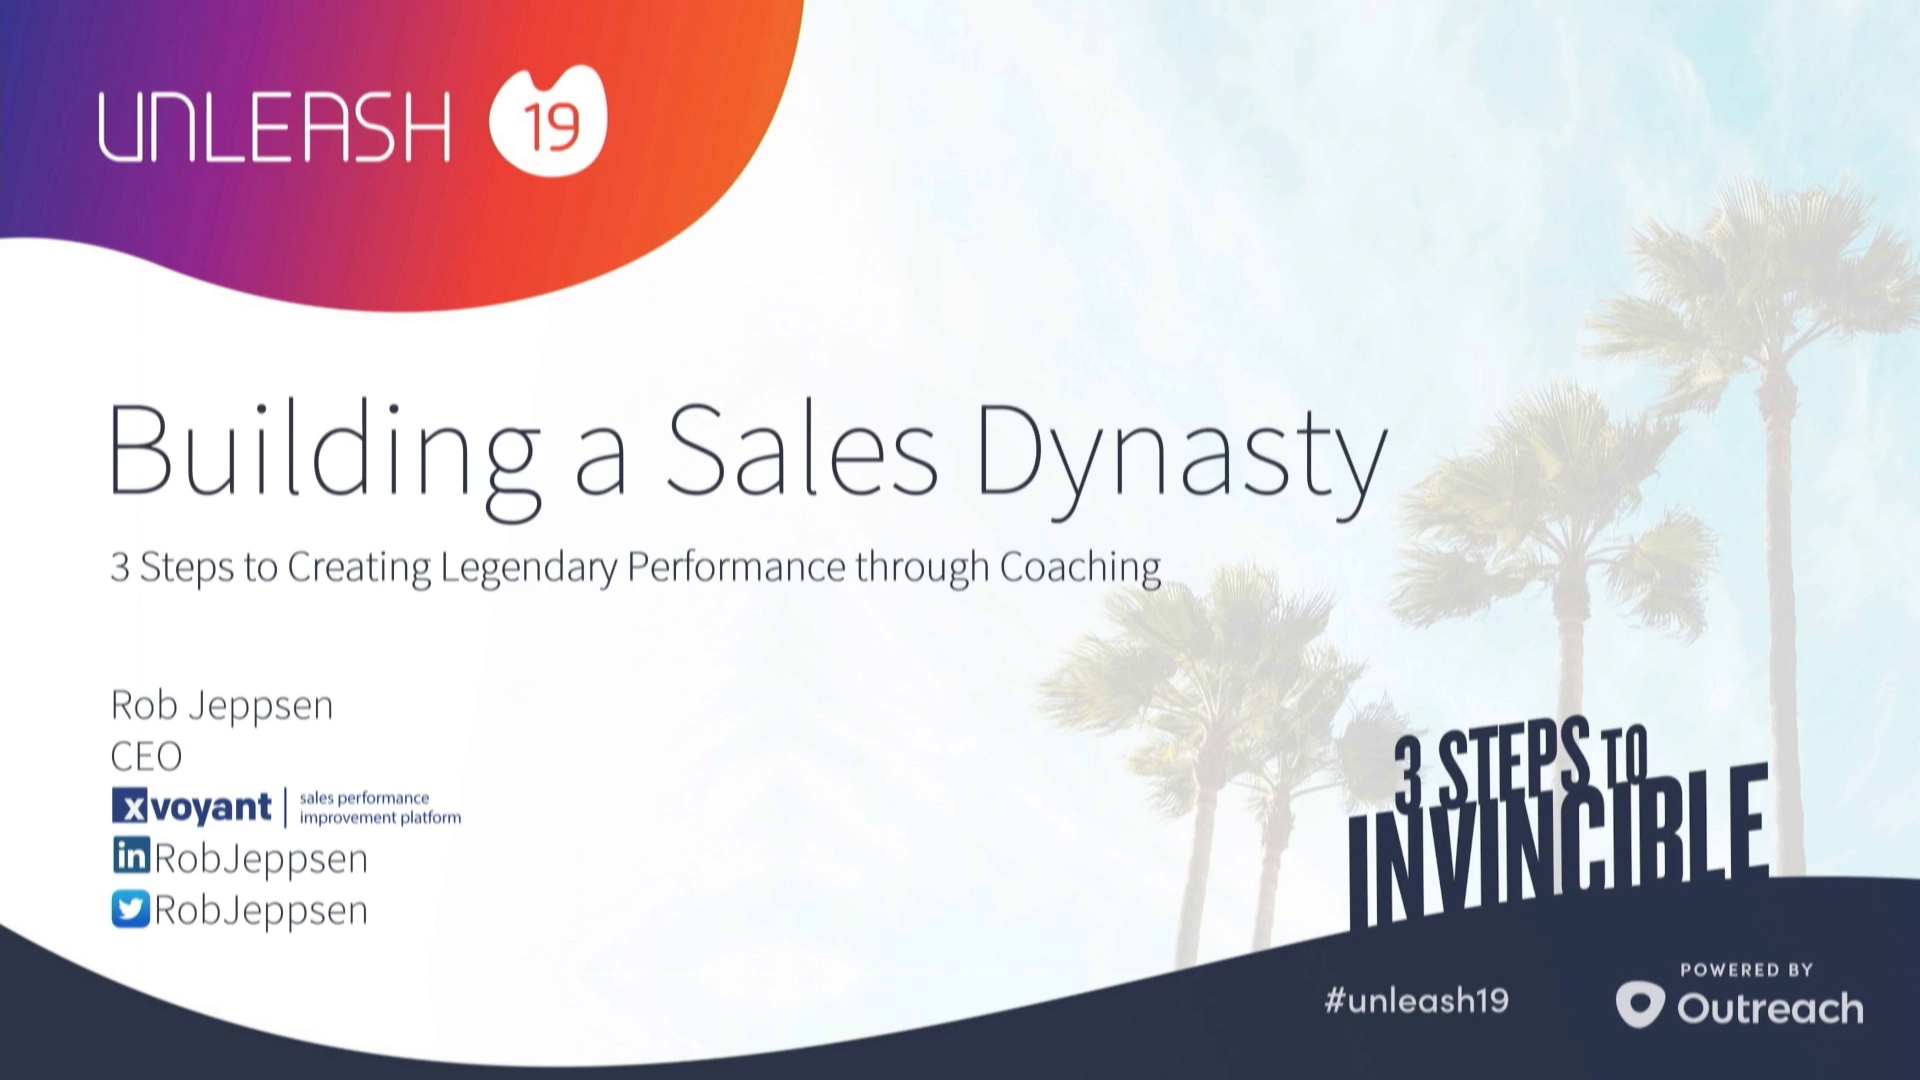 Building a Sales Dynasty Coaching a Winning Sales Team - Rob Jeppsen